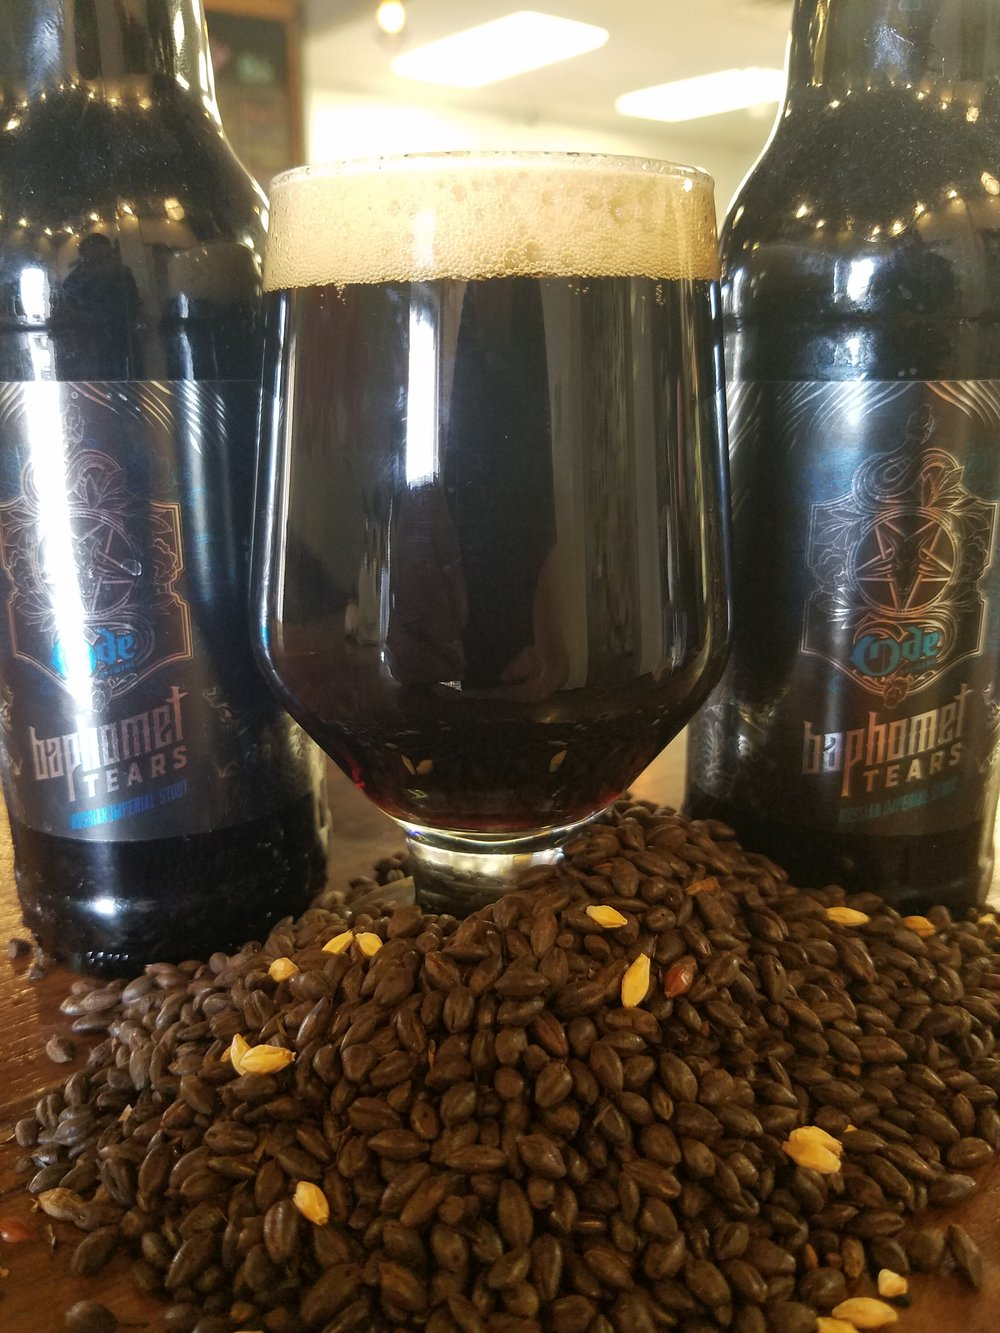 Baphomet Tears (Russian Imperial Stout)